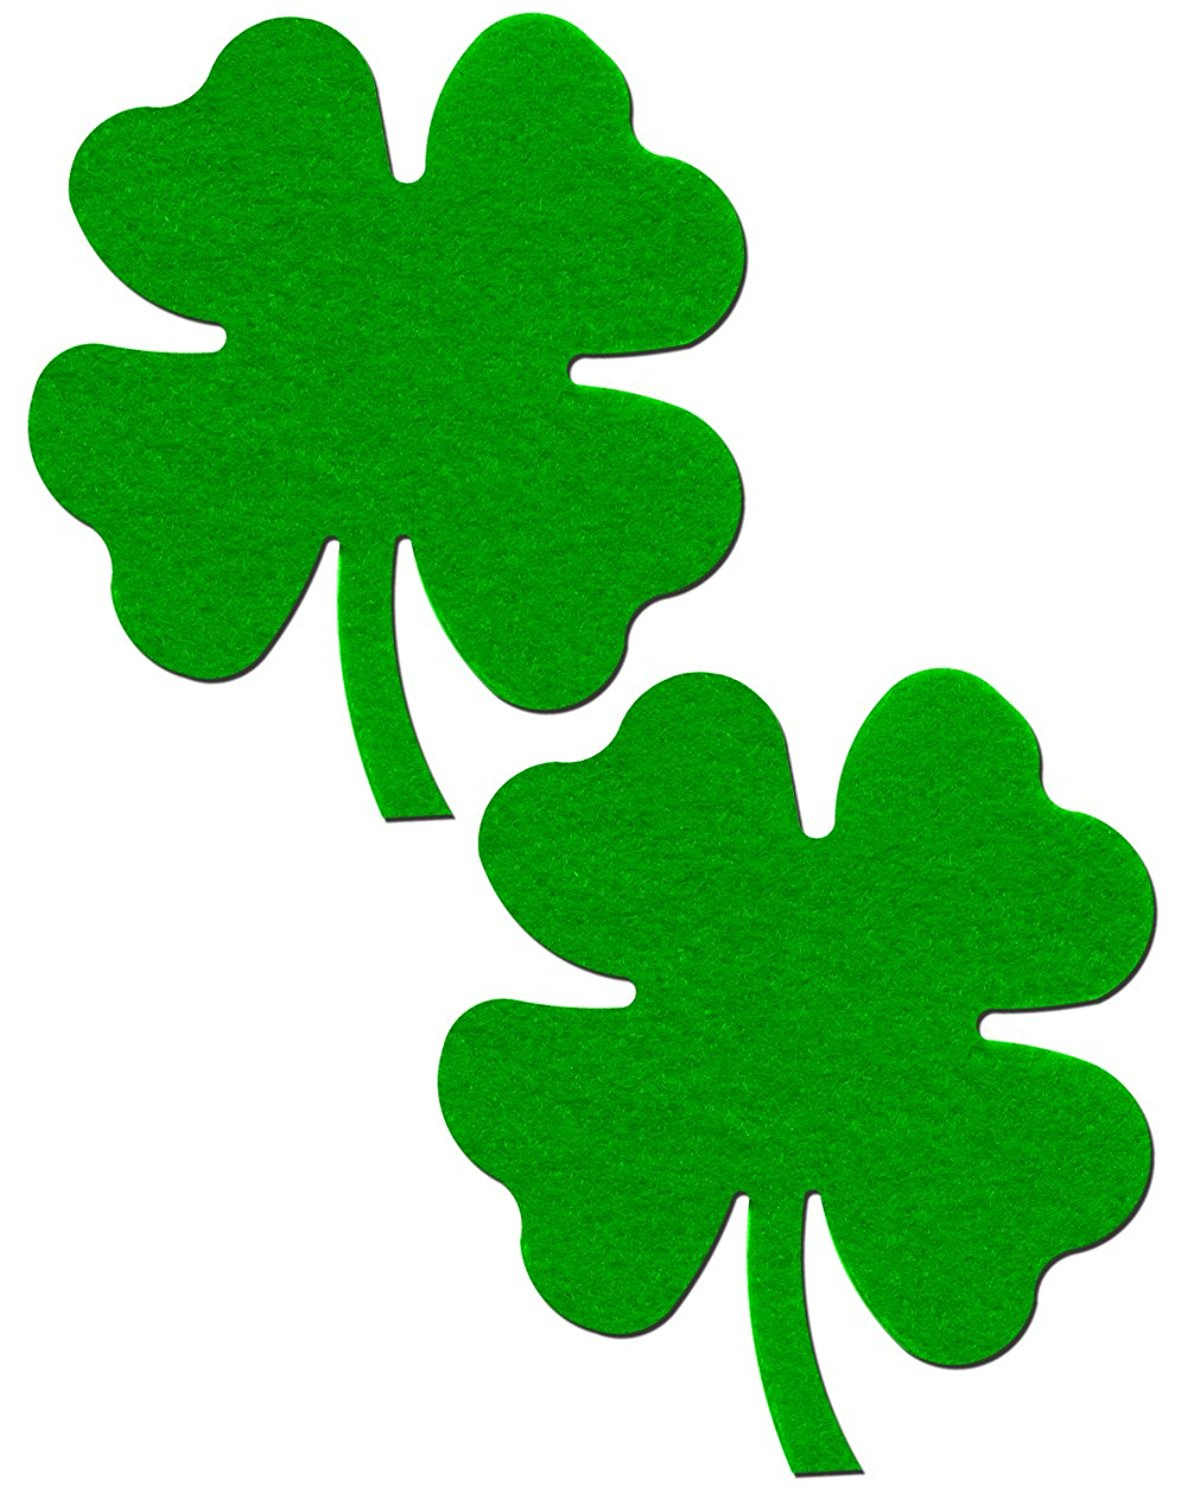 1188x1500 Compromise Images Of Four Leaf Clovers Challenge 4 Pictures Free